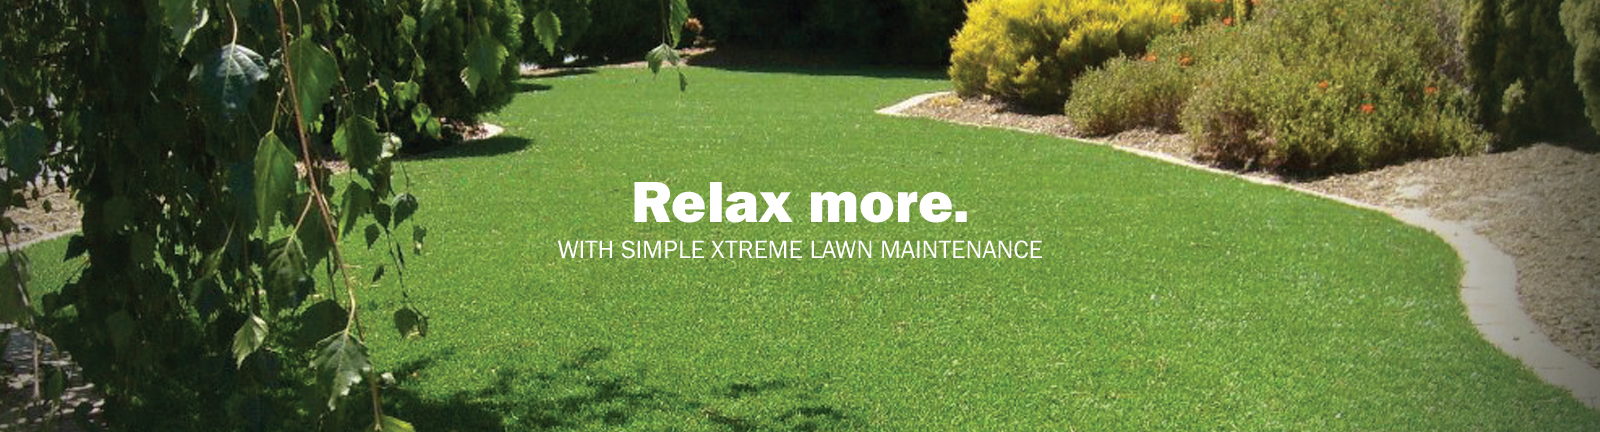 easy landscape grass maintenance